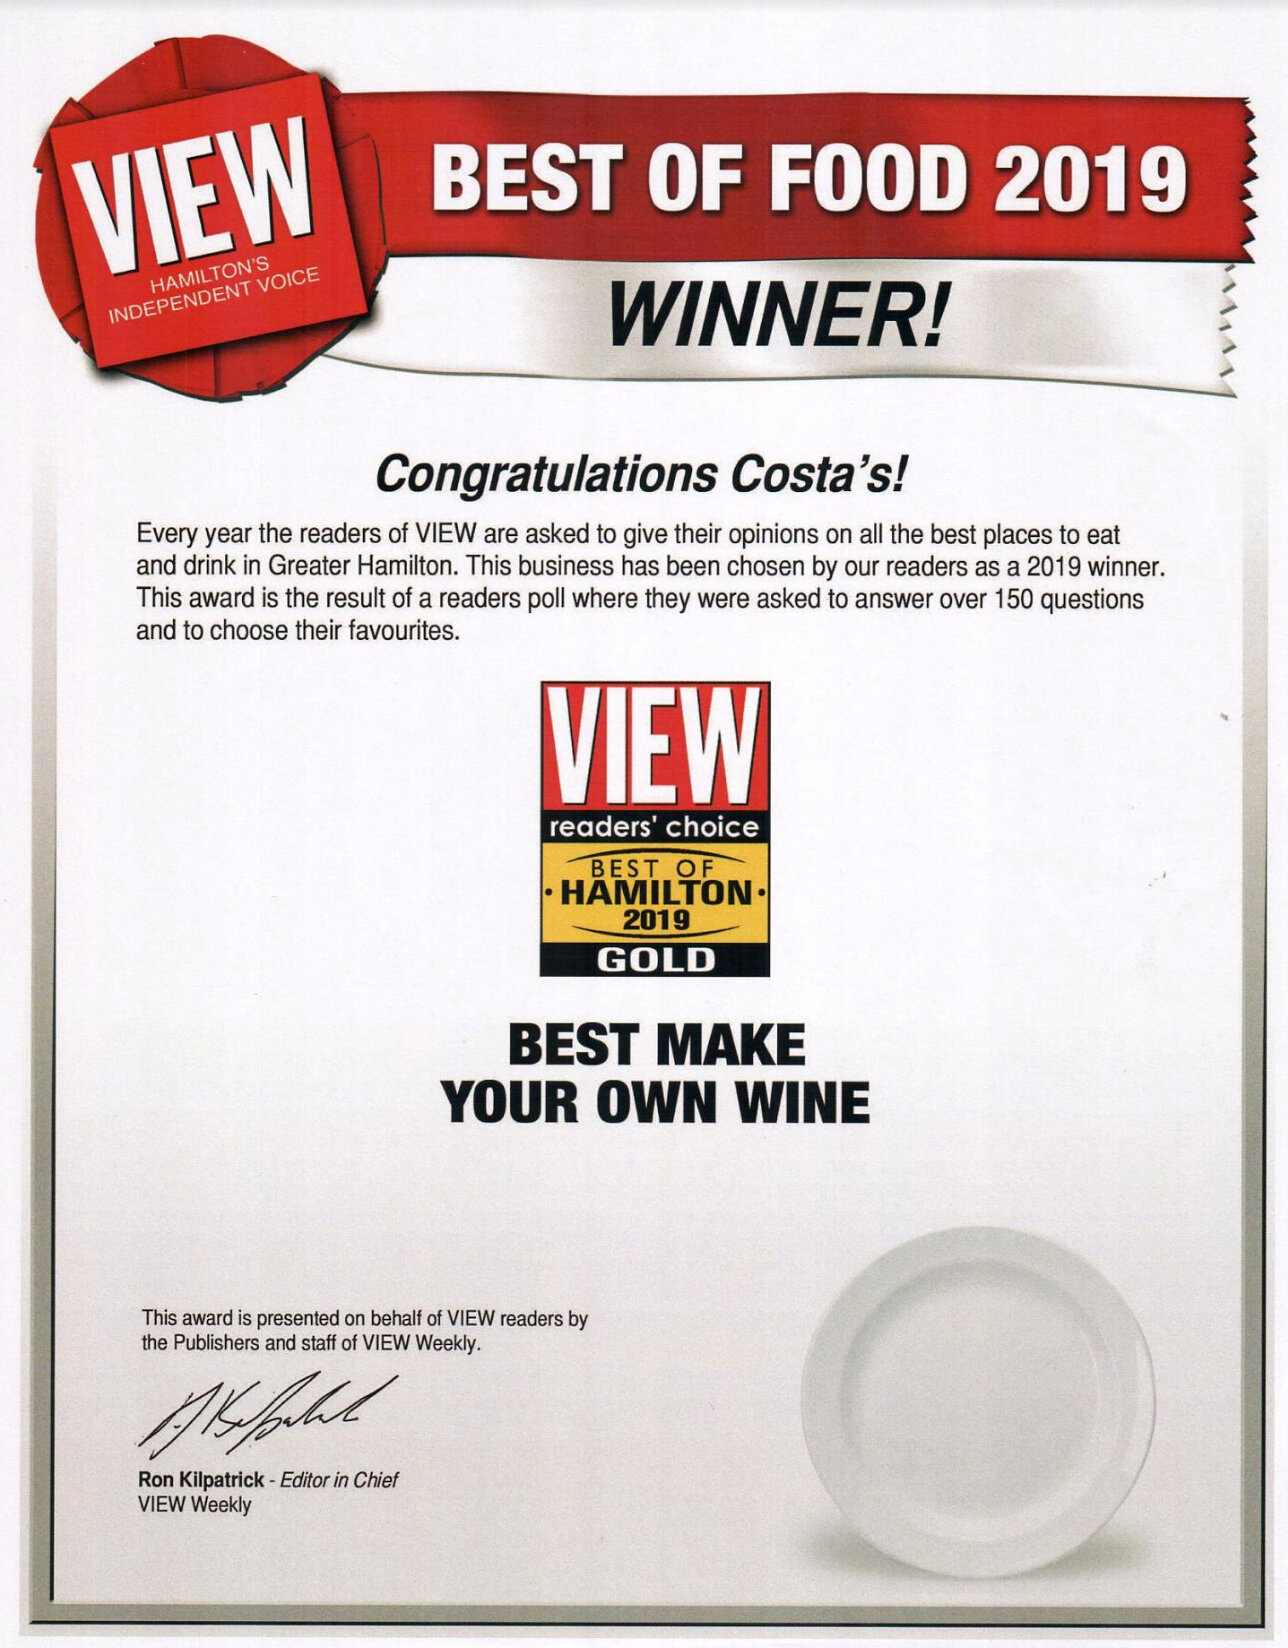 Costas-Wine-Country-Winner-VIEW-Magazine-Best-of-Food-2019-Best-Make-your-Own-Wine-Gold.jpg